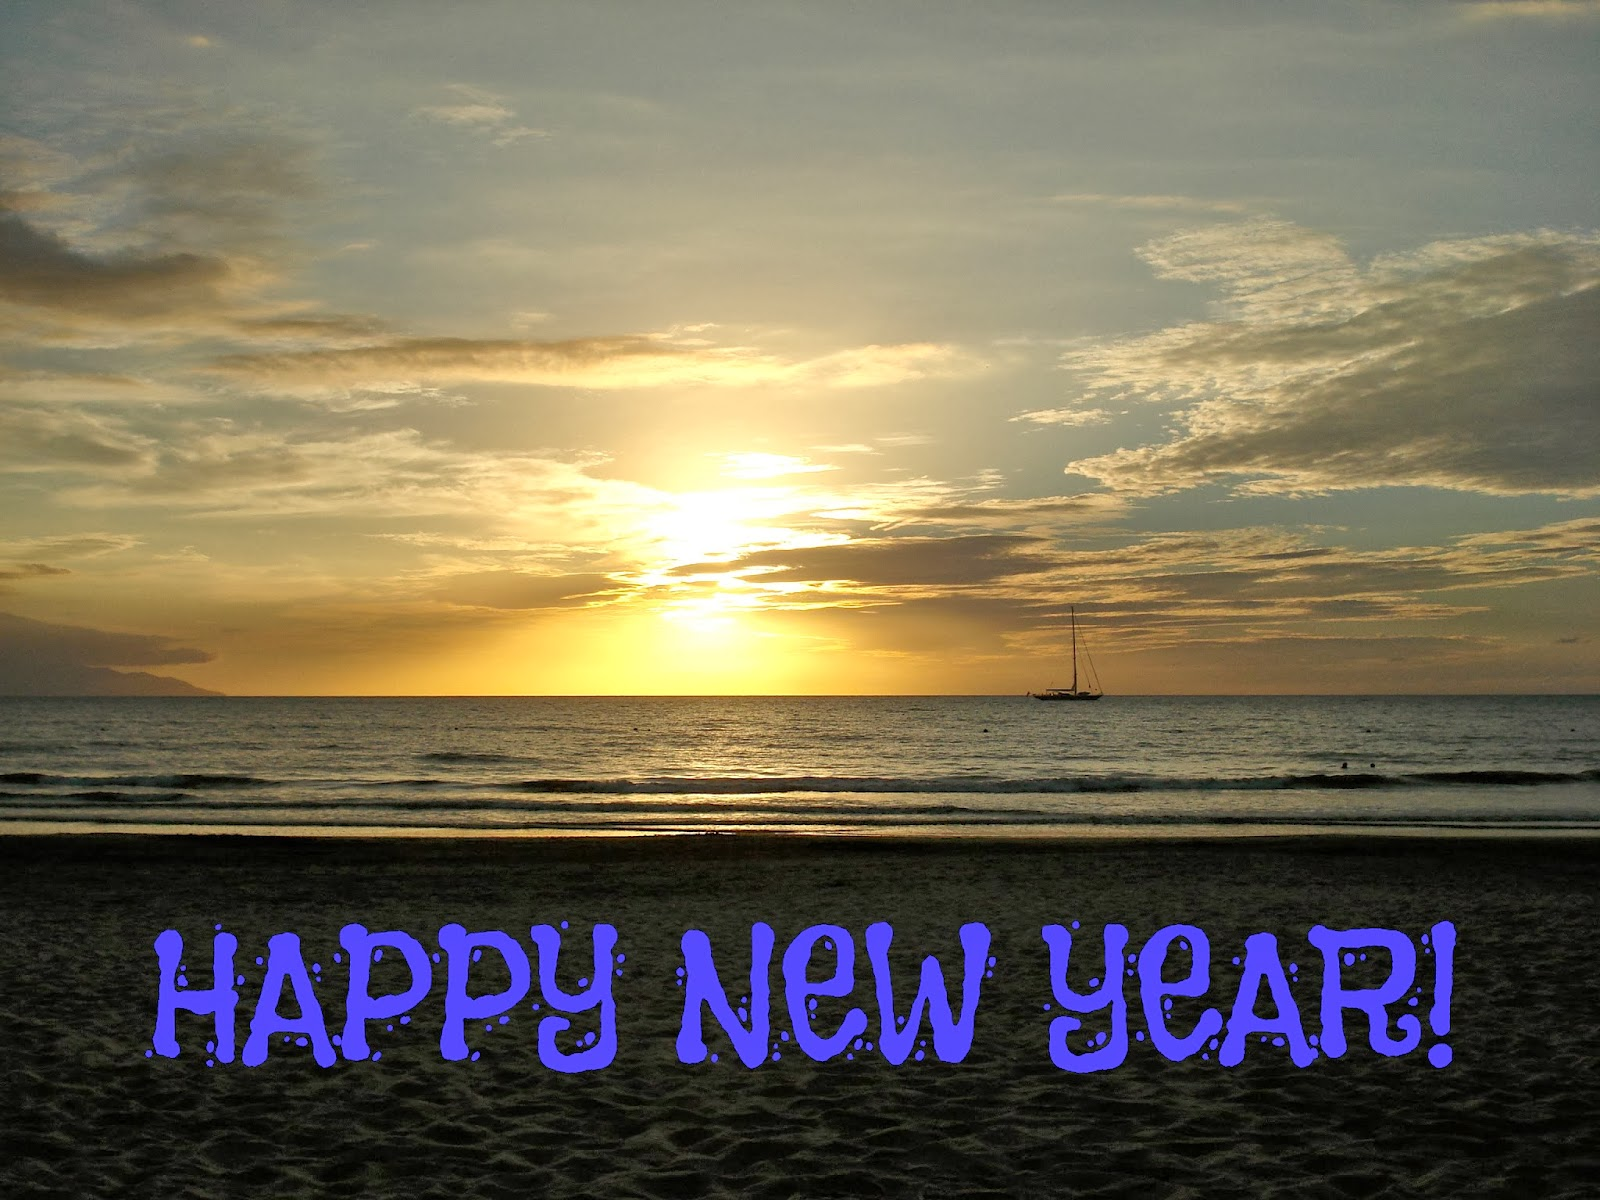 essay new year one happiest occasions